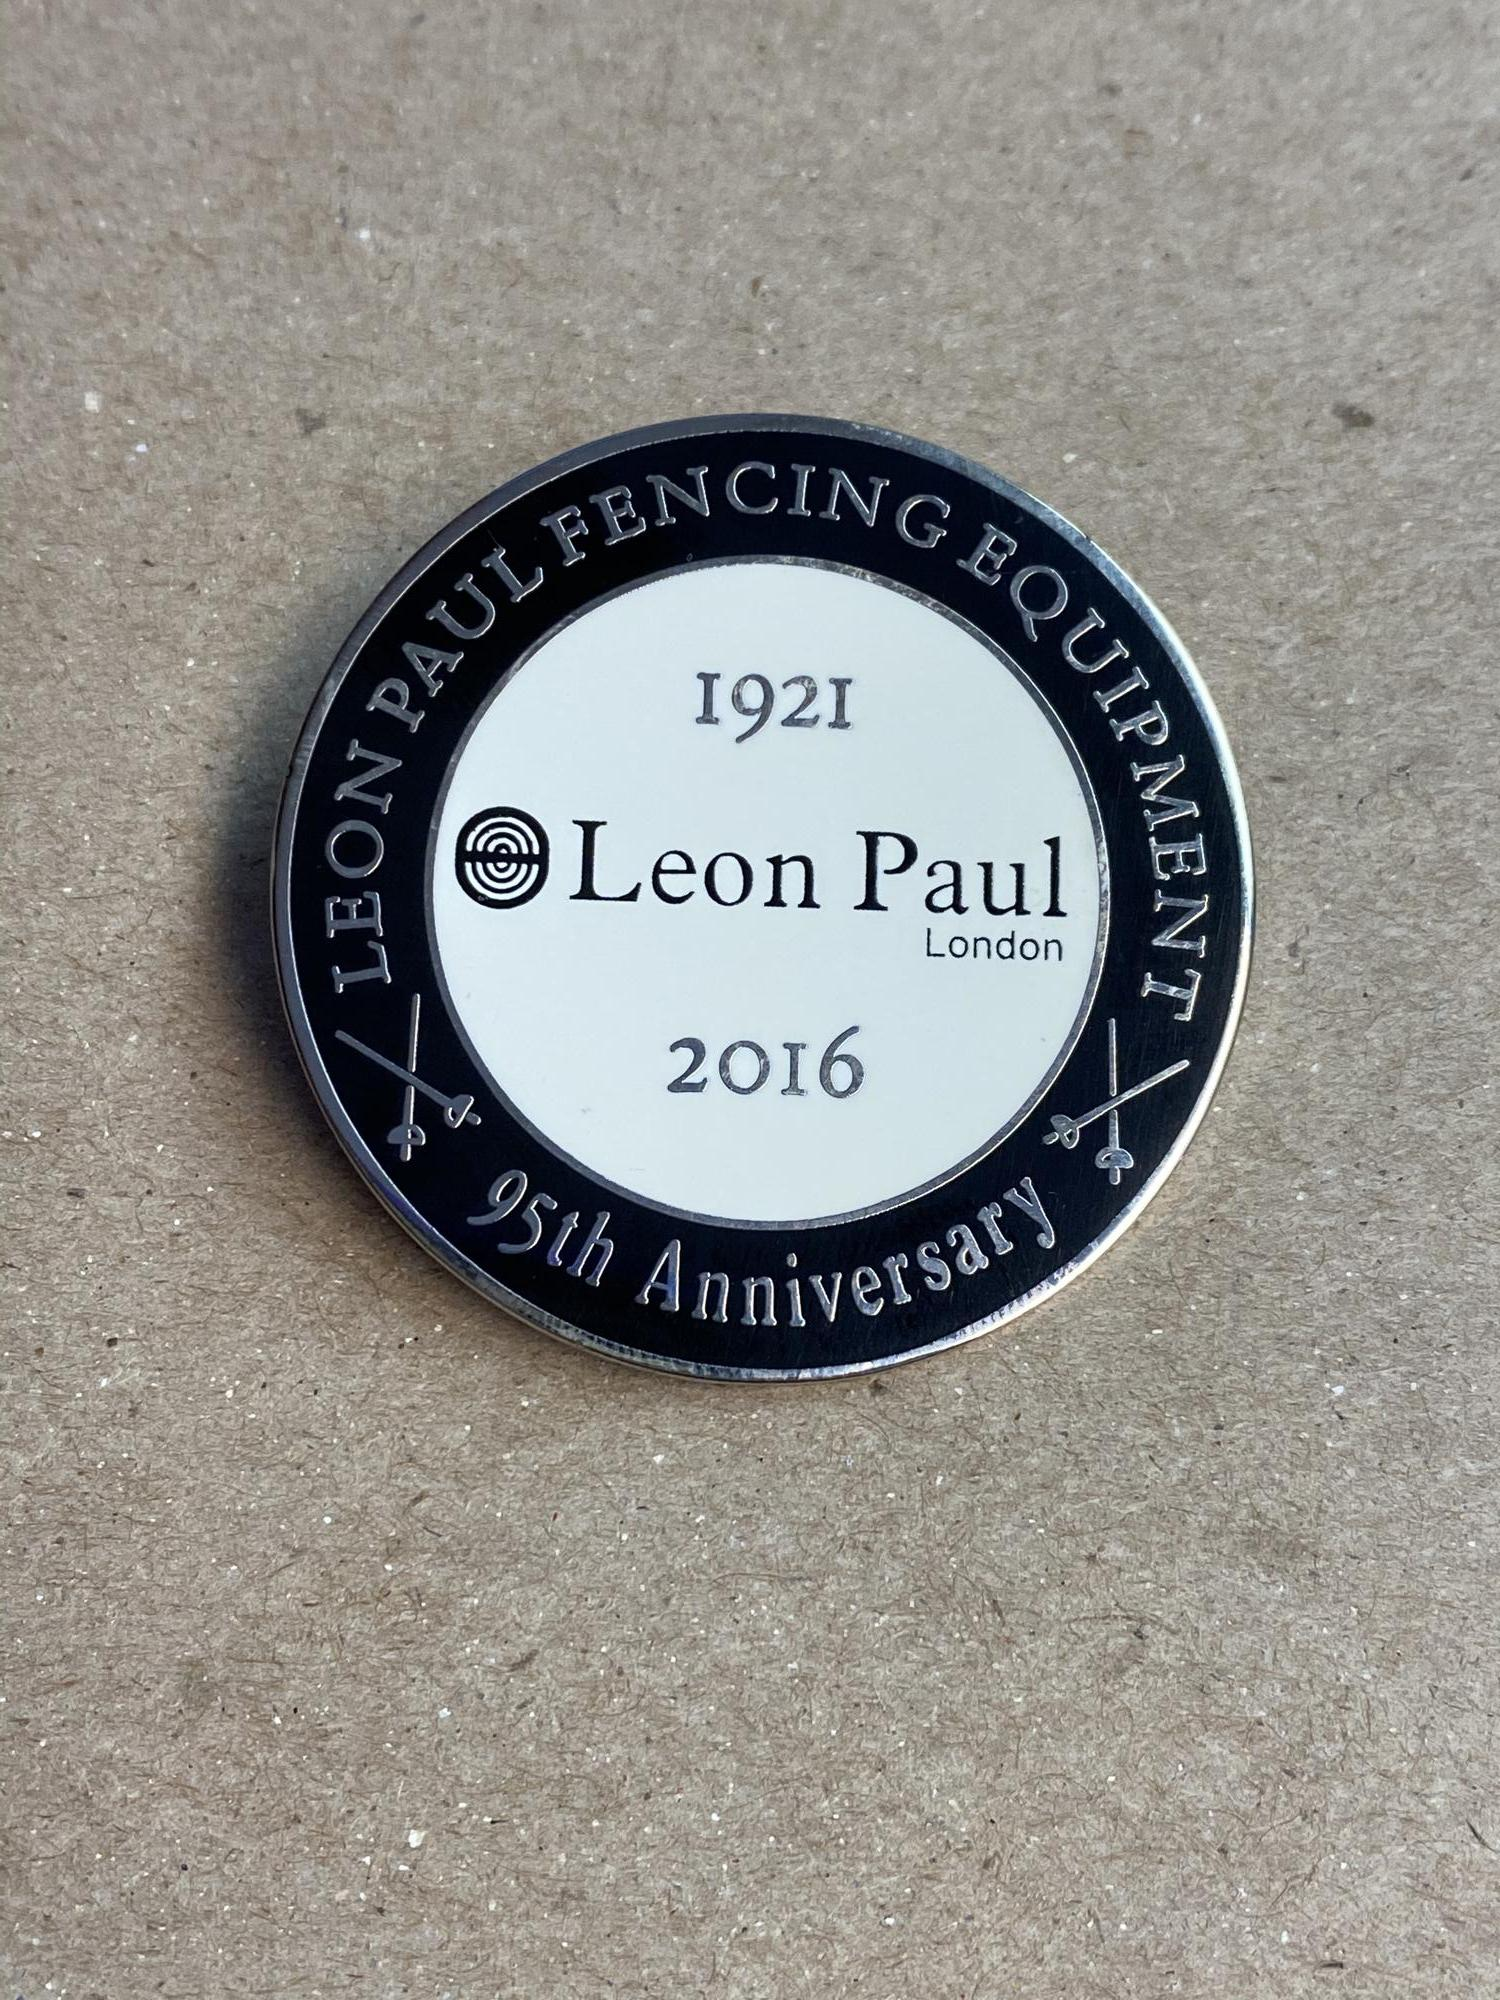 Leon Paul Fencing Equipment 95th Anniversary Pin